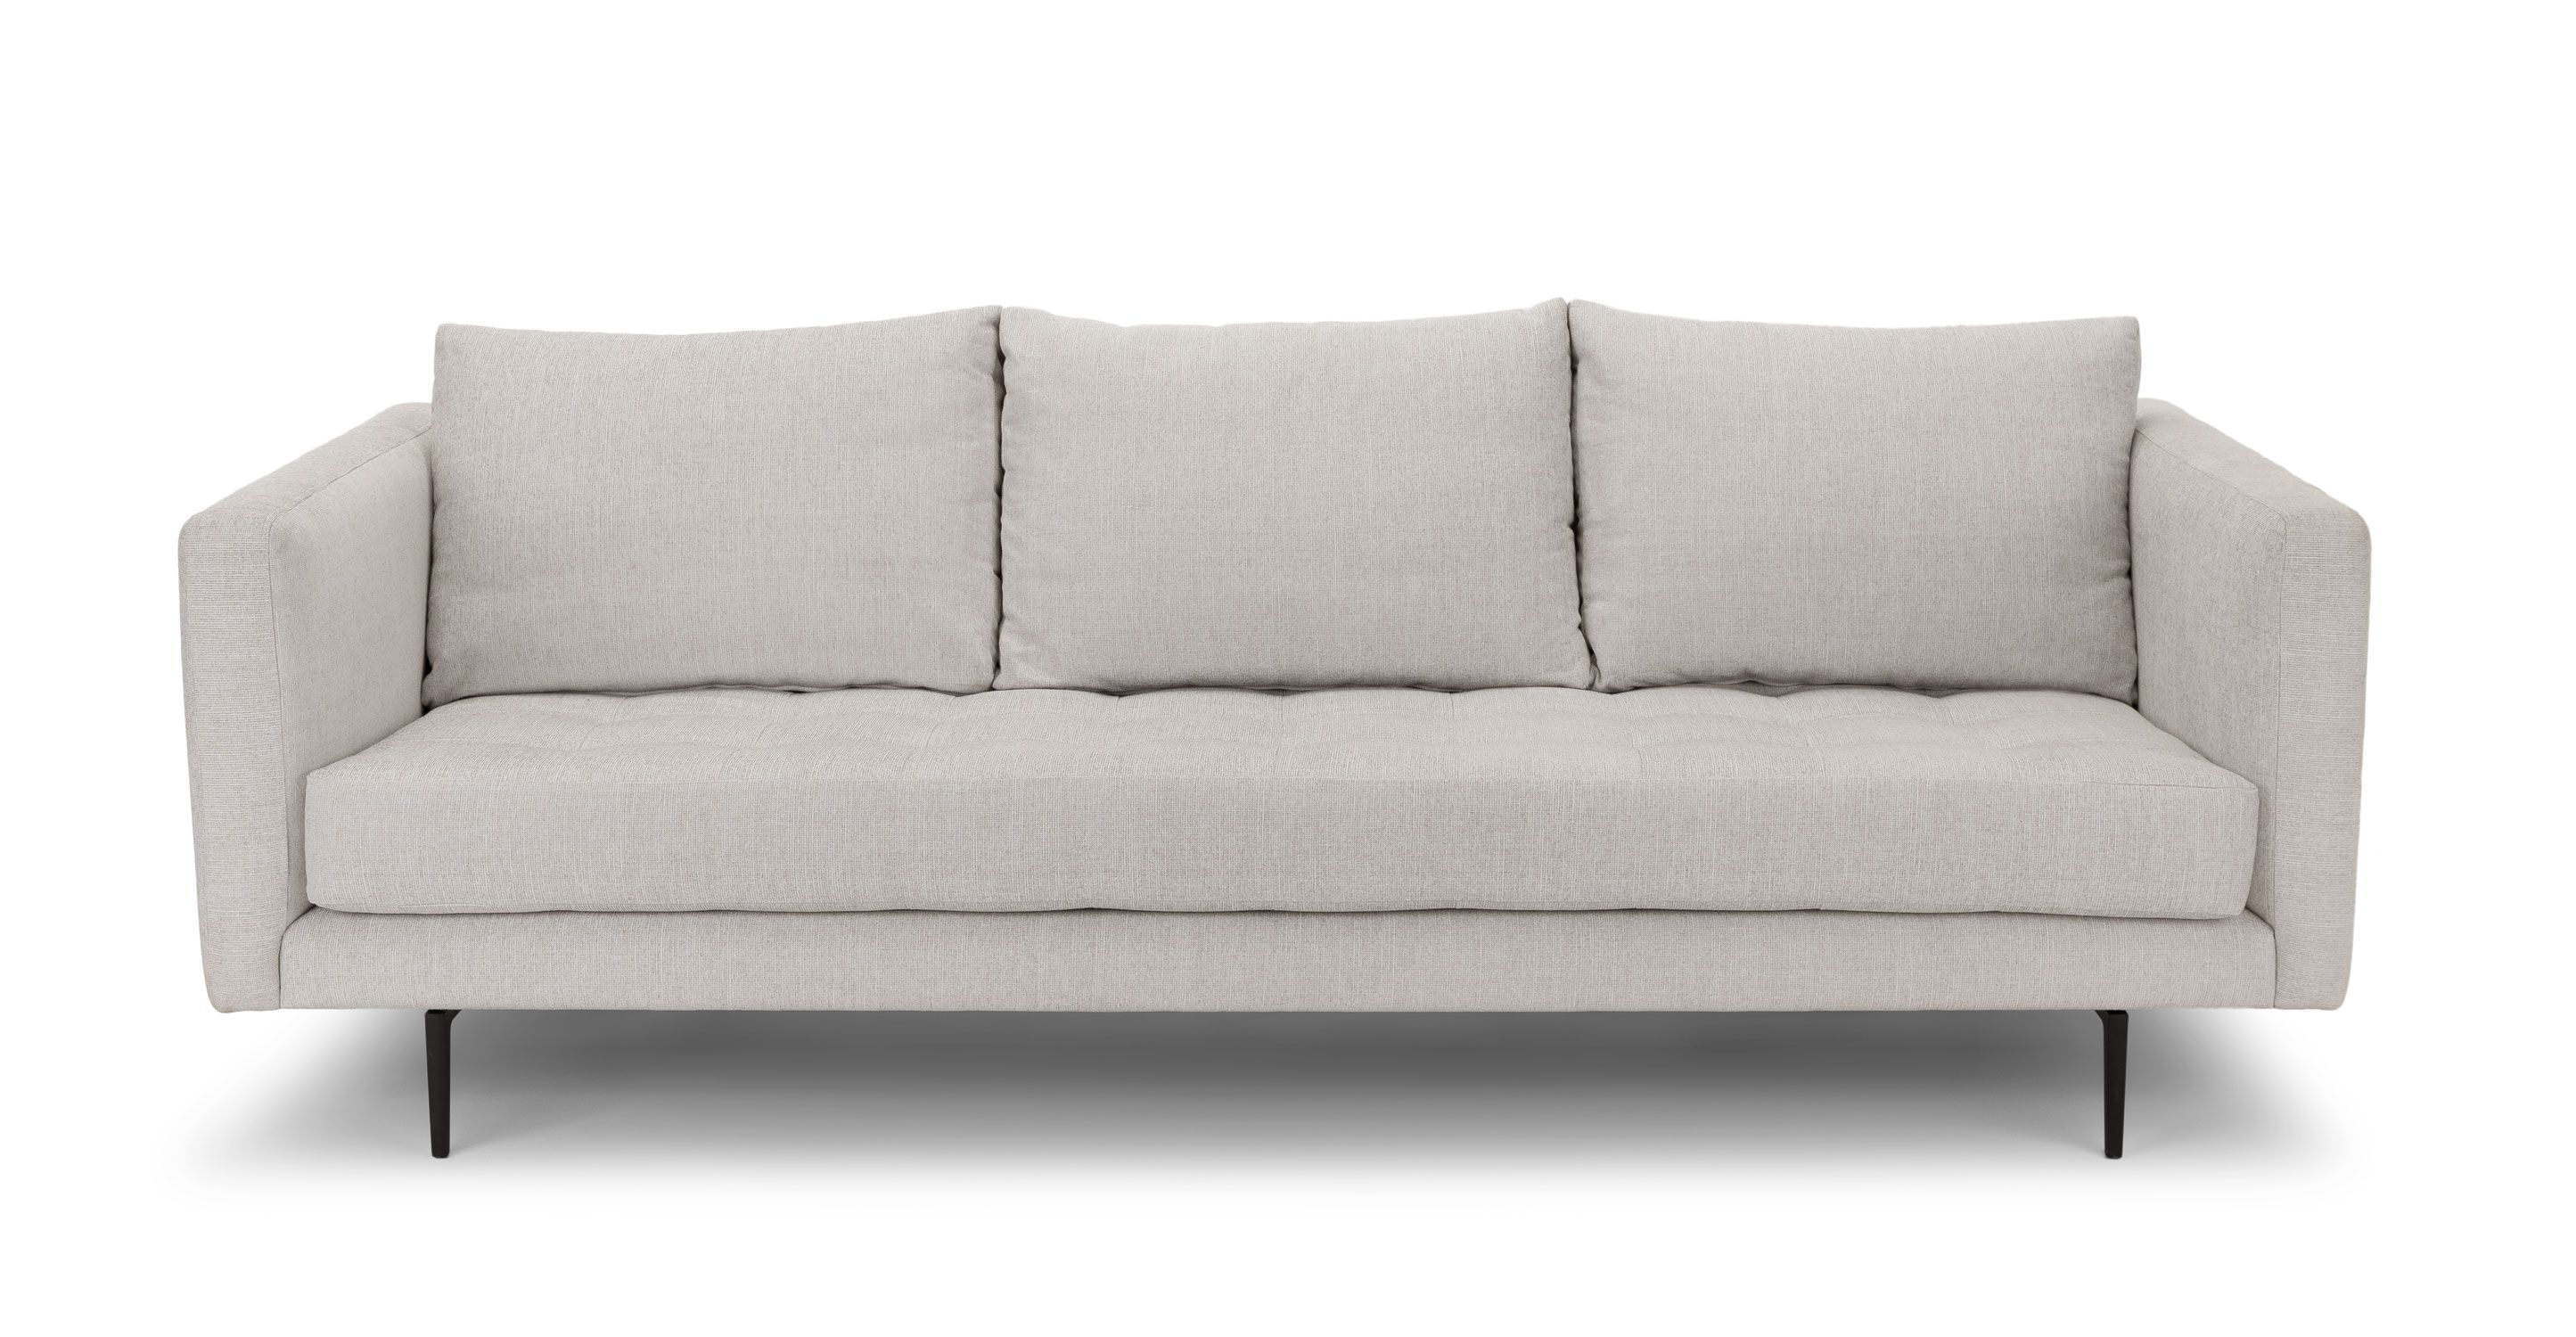 White Tufted Sofa 3 Seater Upholstered